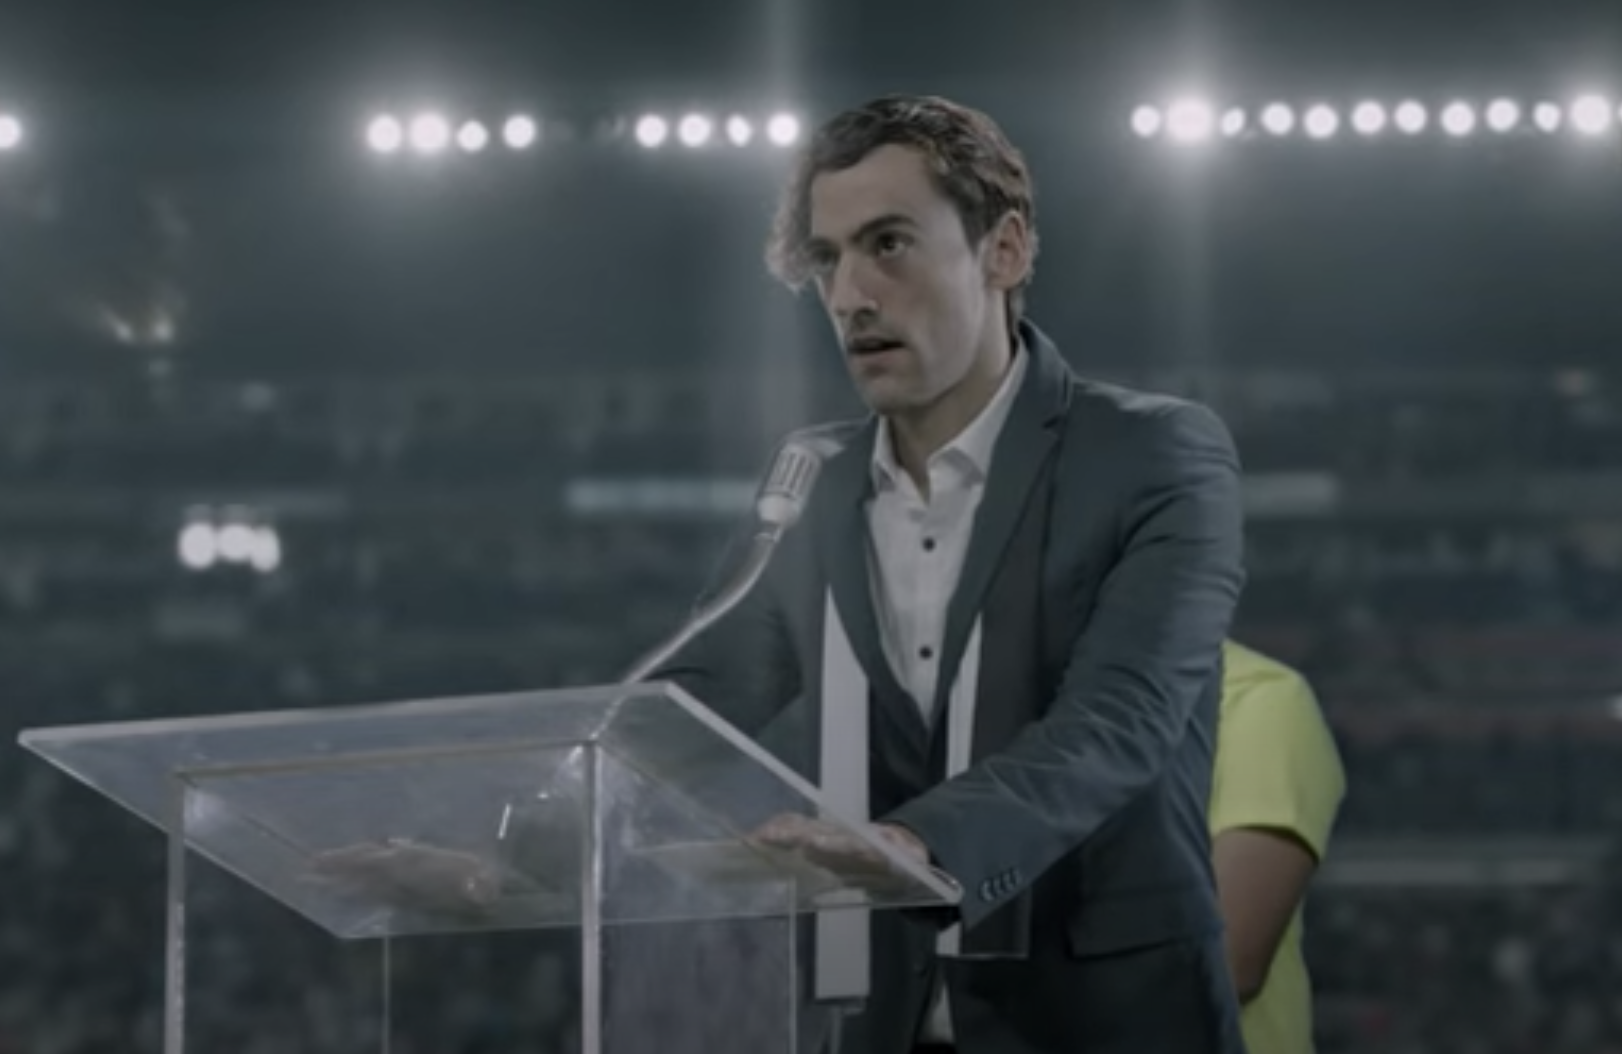 Chava giving a speech in Club de cuervos